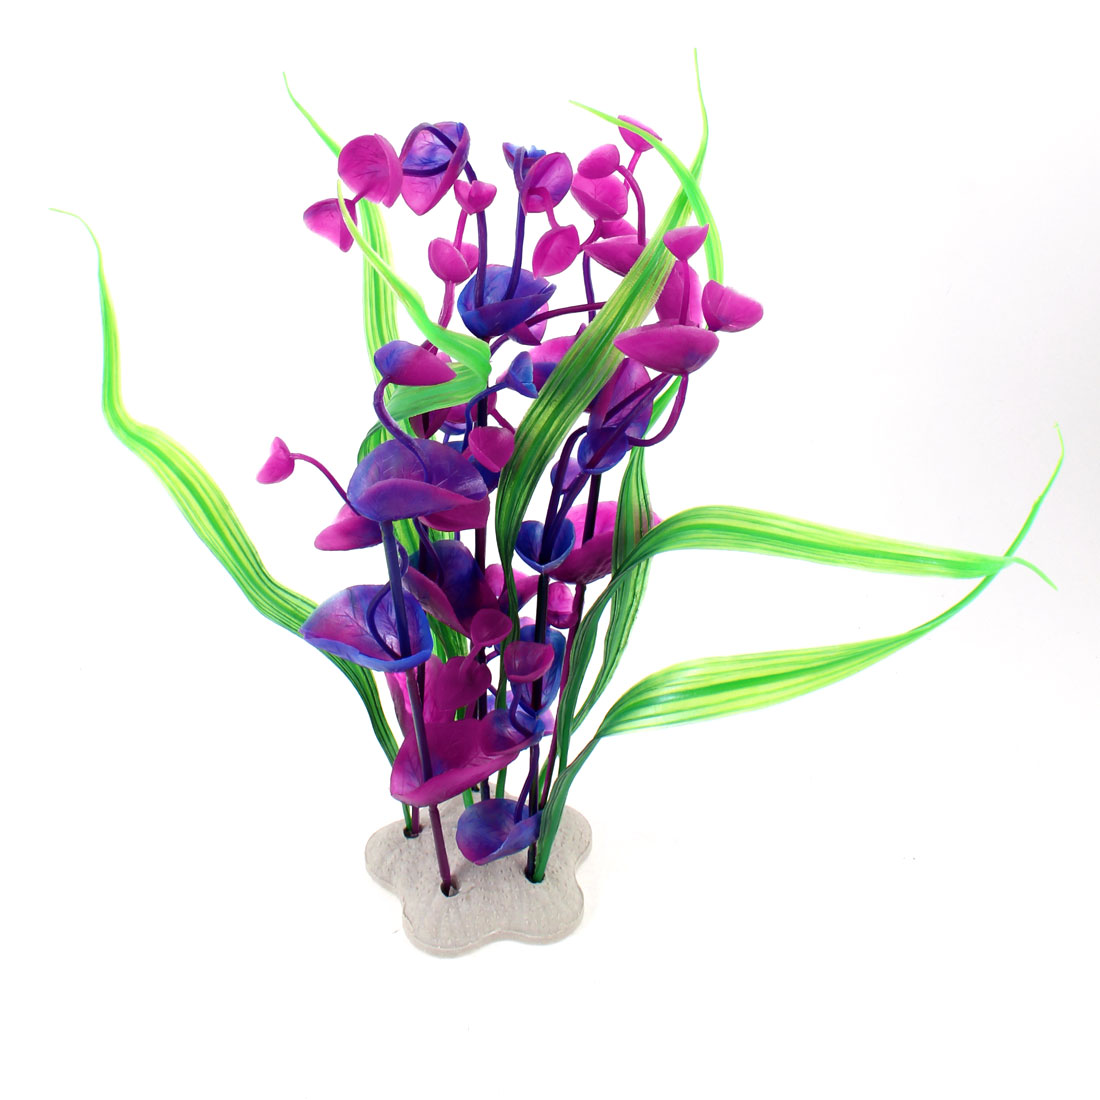 "9.4"" Height Green Grass Violet Purple Flower Aquatic Plant for Aquarium"